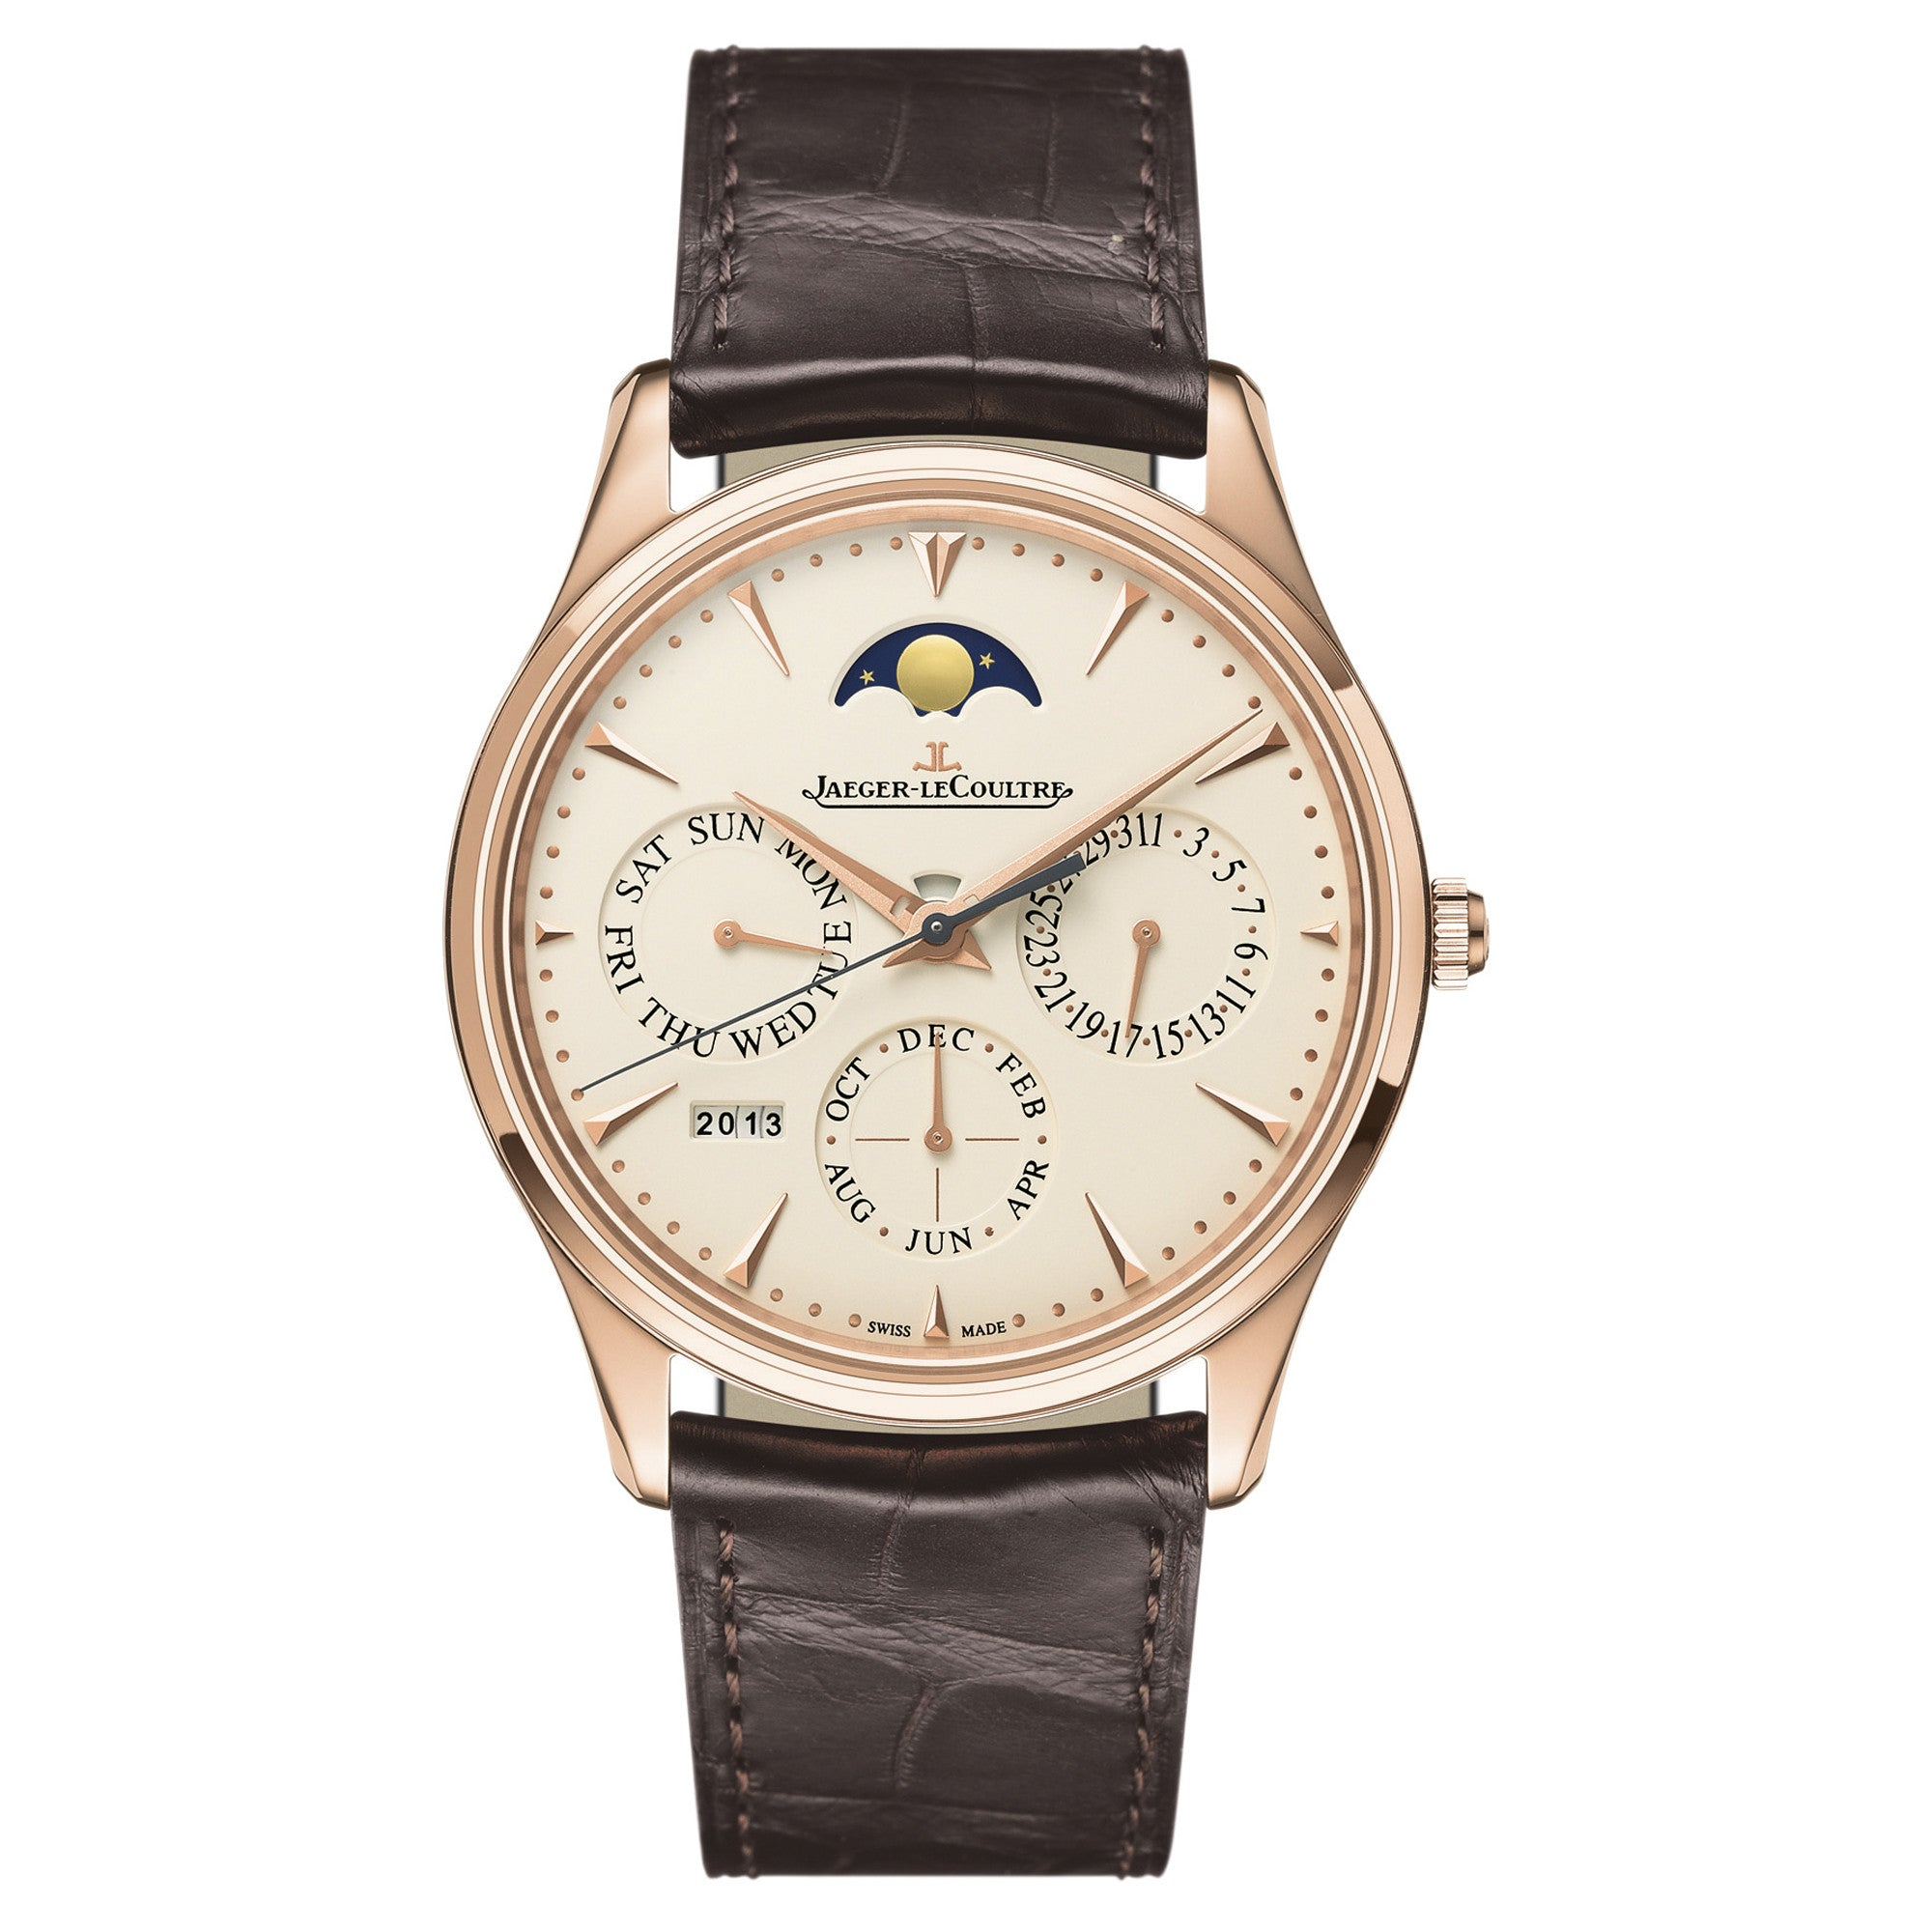 Master Ultra Thin Perpetual Calendar Automatic Men's Watch